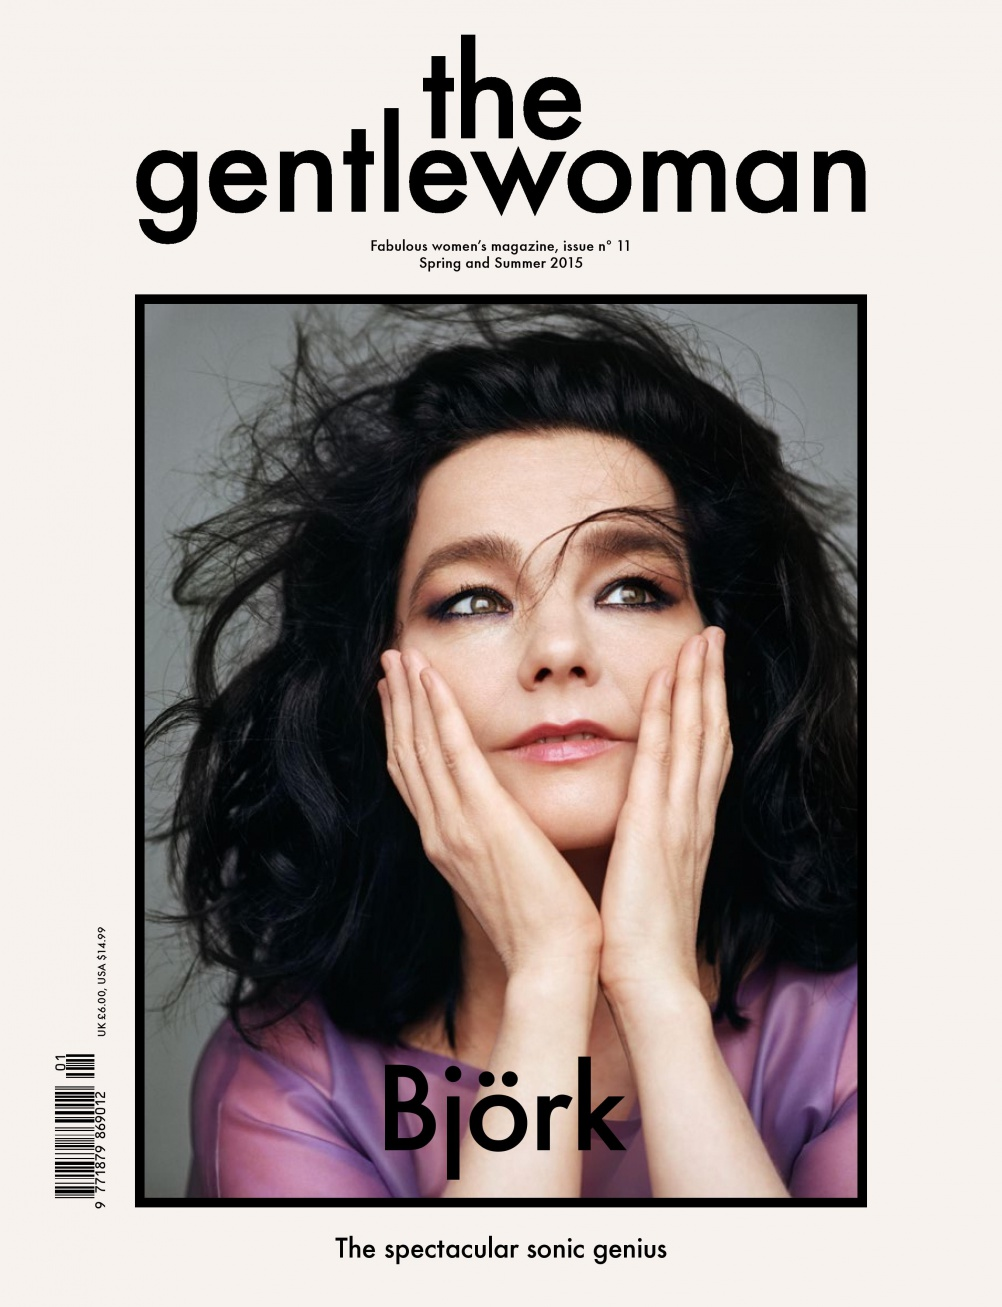 DW15.0042.02-The Gentlewoman Spring and Summer 2015-page-001